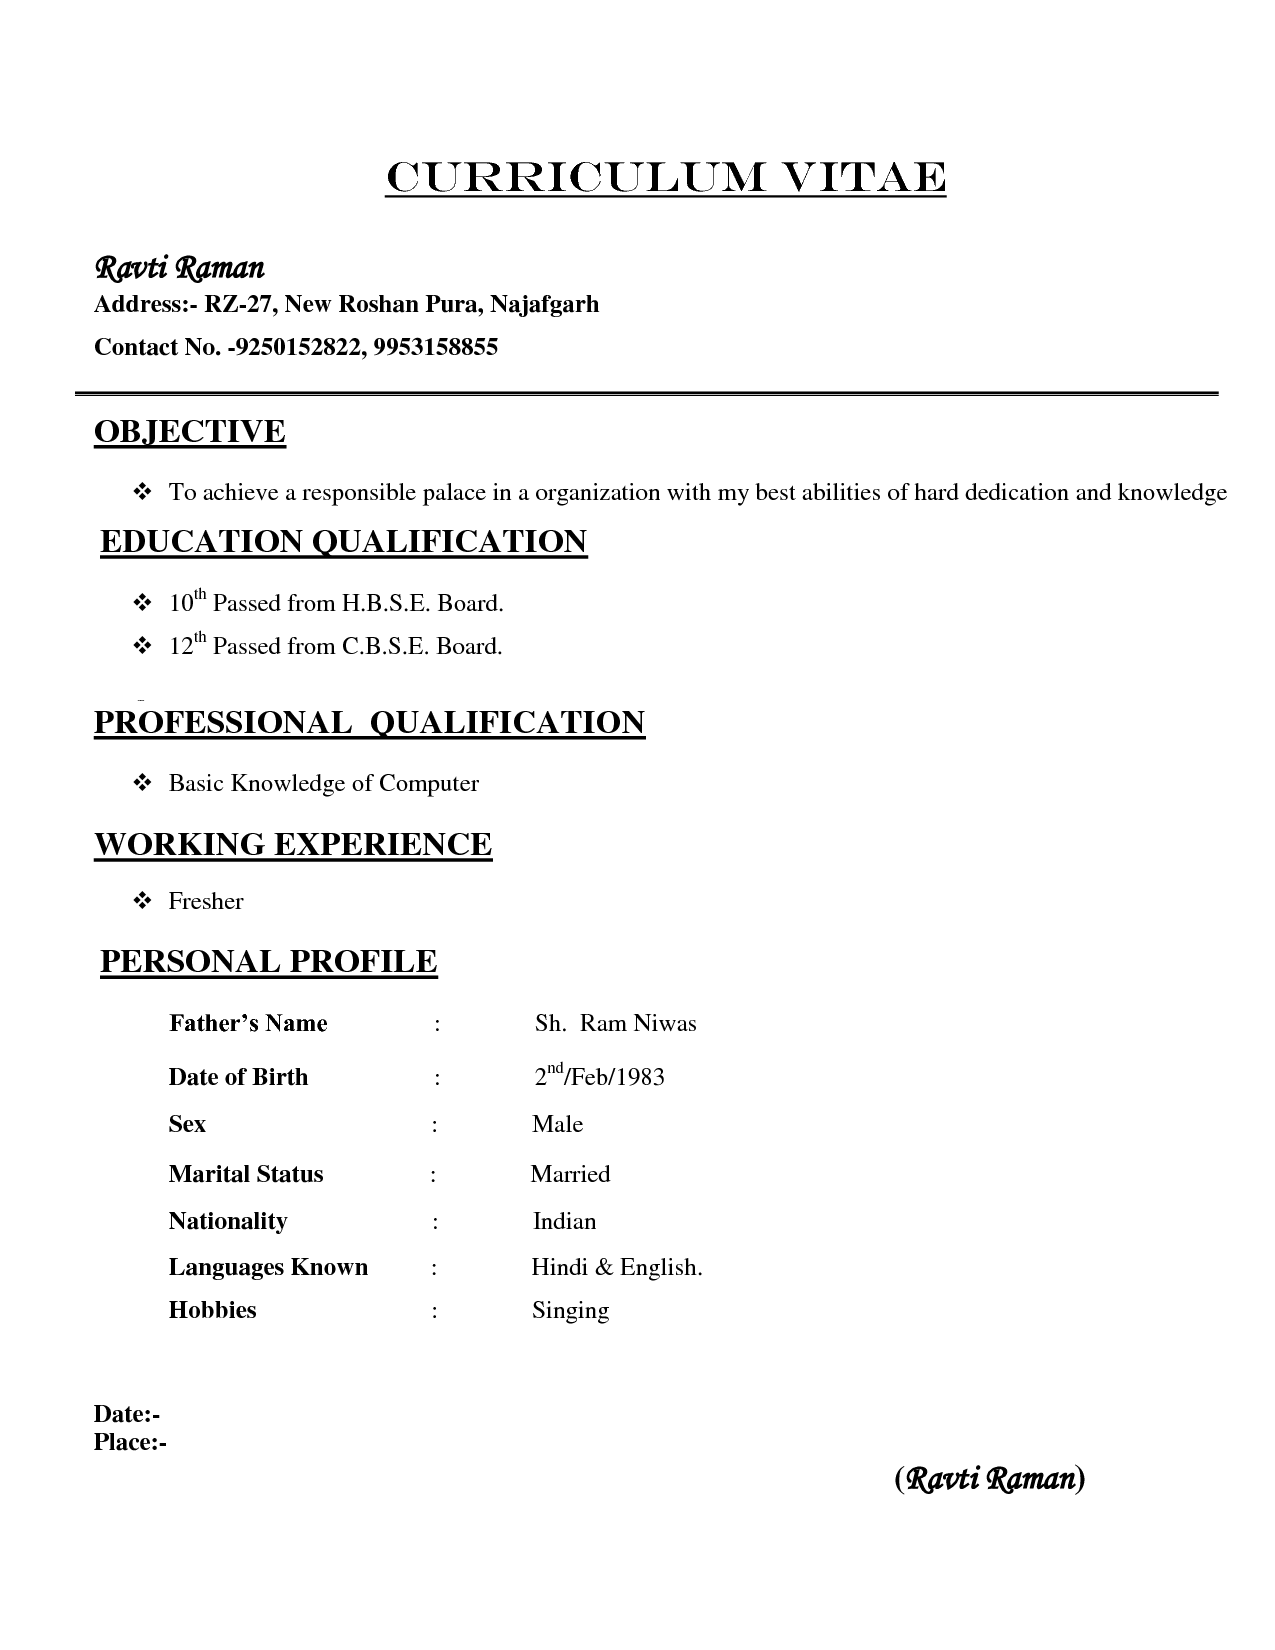 Sample Resume Format For Freshers Basic Resume Format For Freshers Sample Downloads